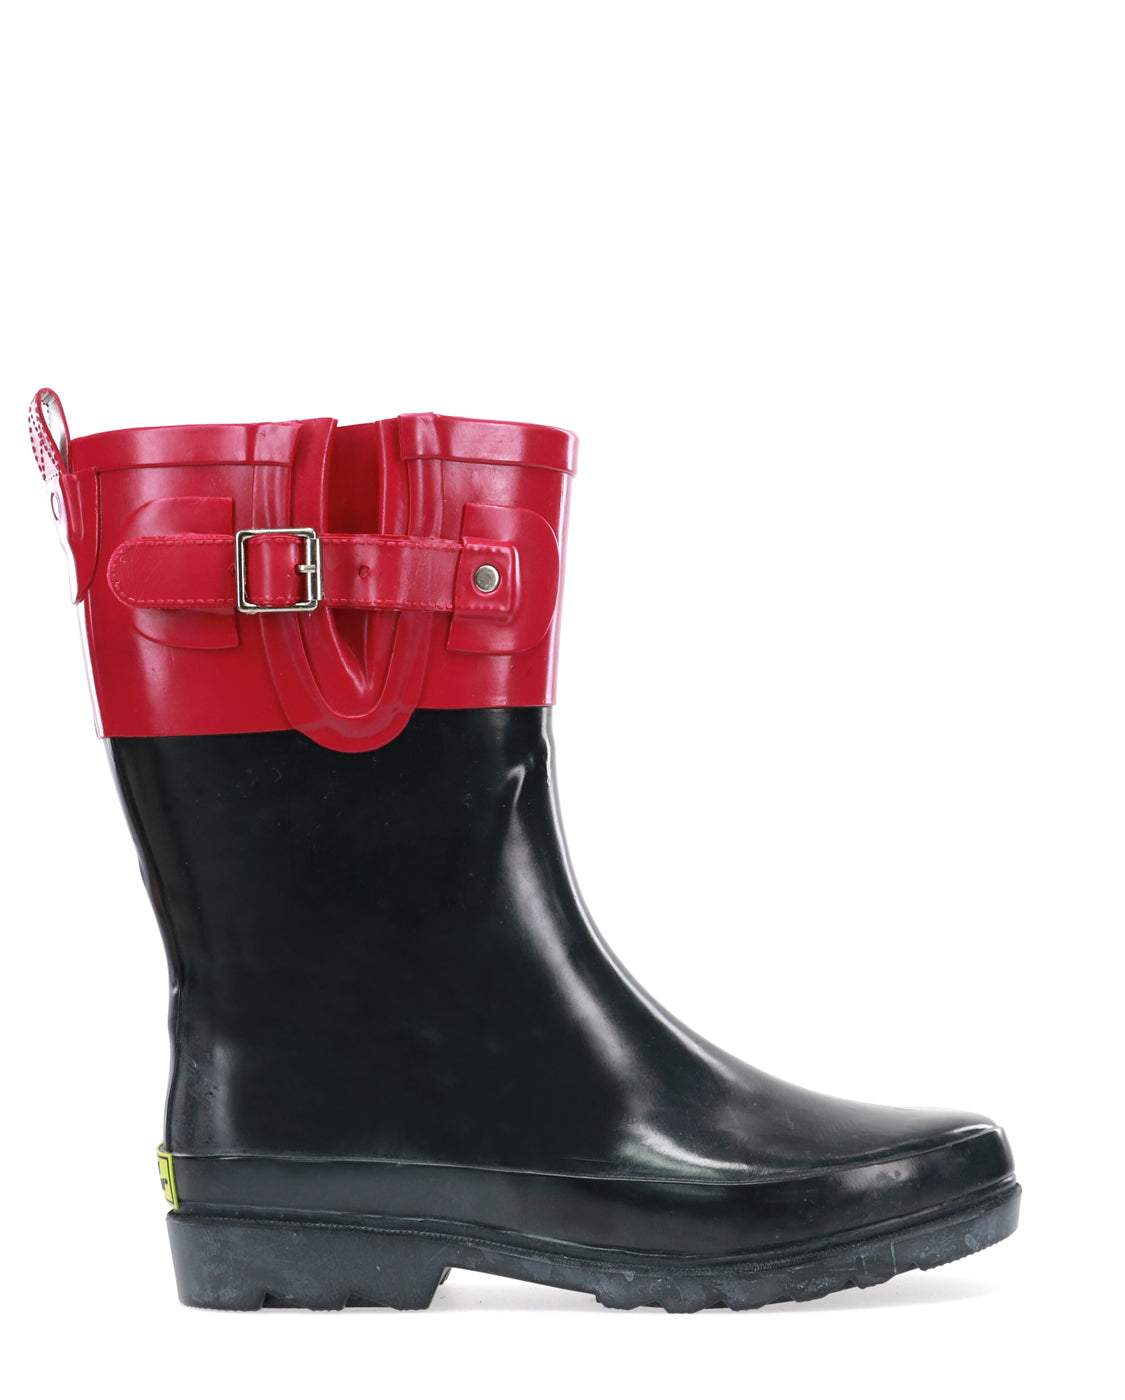 Women's Top Pop Mid Rain Boot - Pink